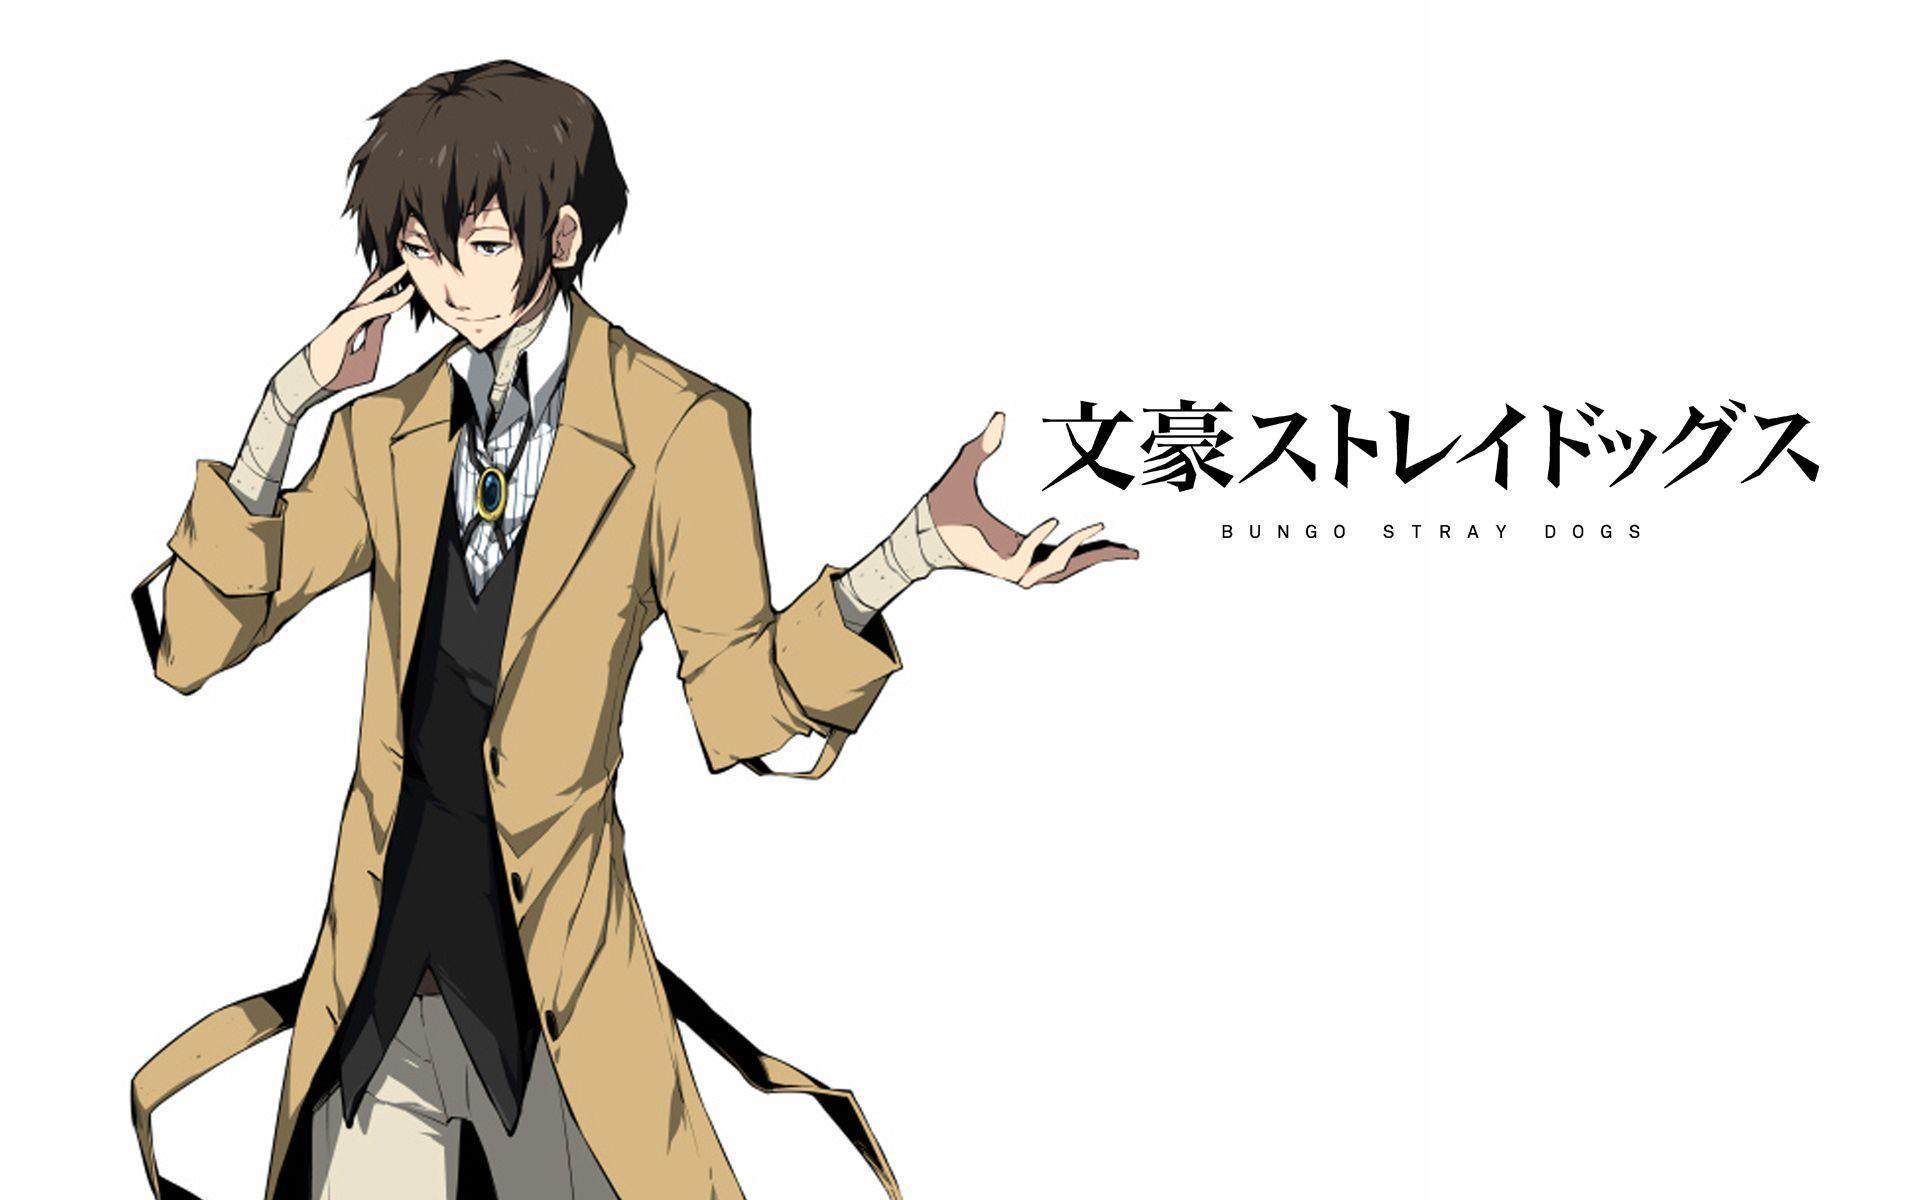 Bungo Stray Dogs Wallpapers - Wallpaper Cave